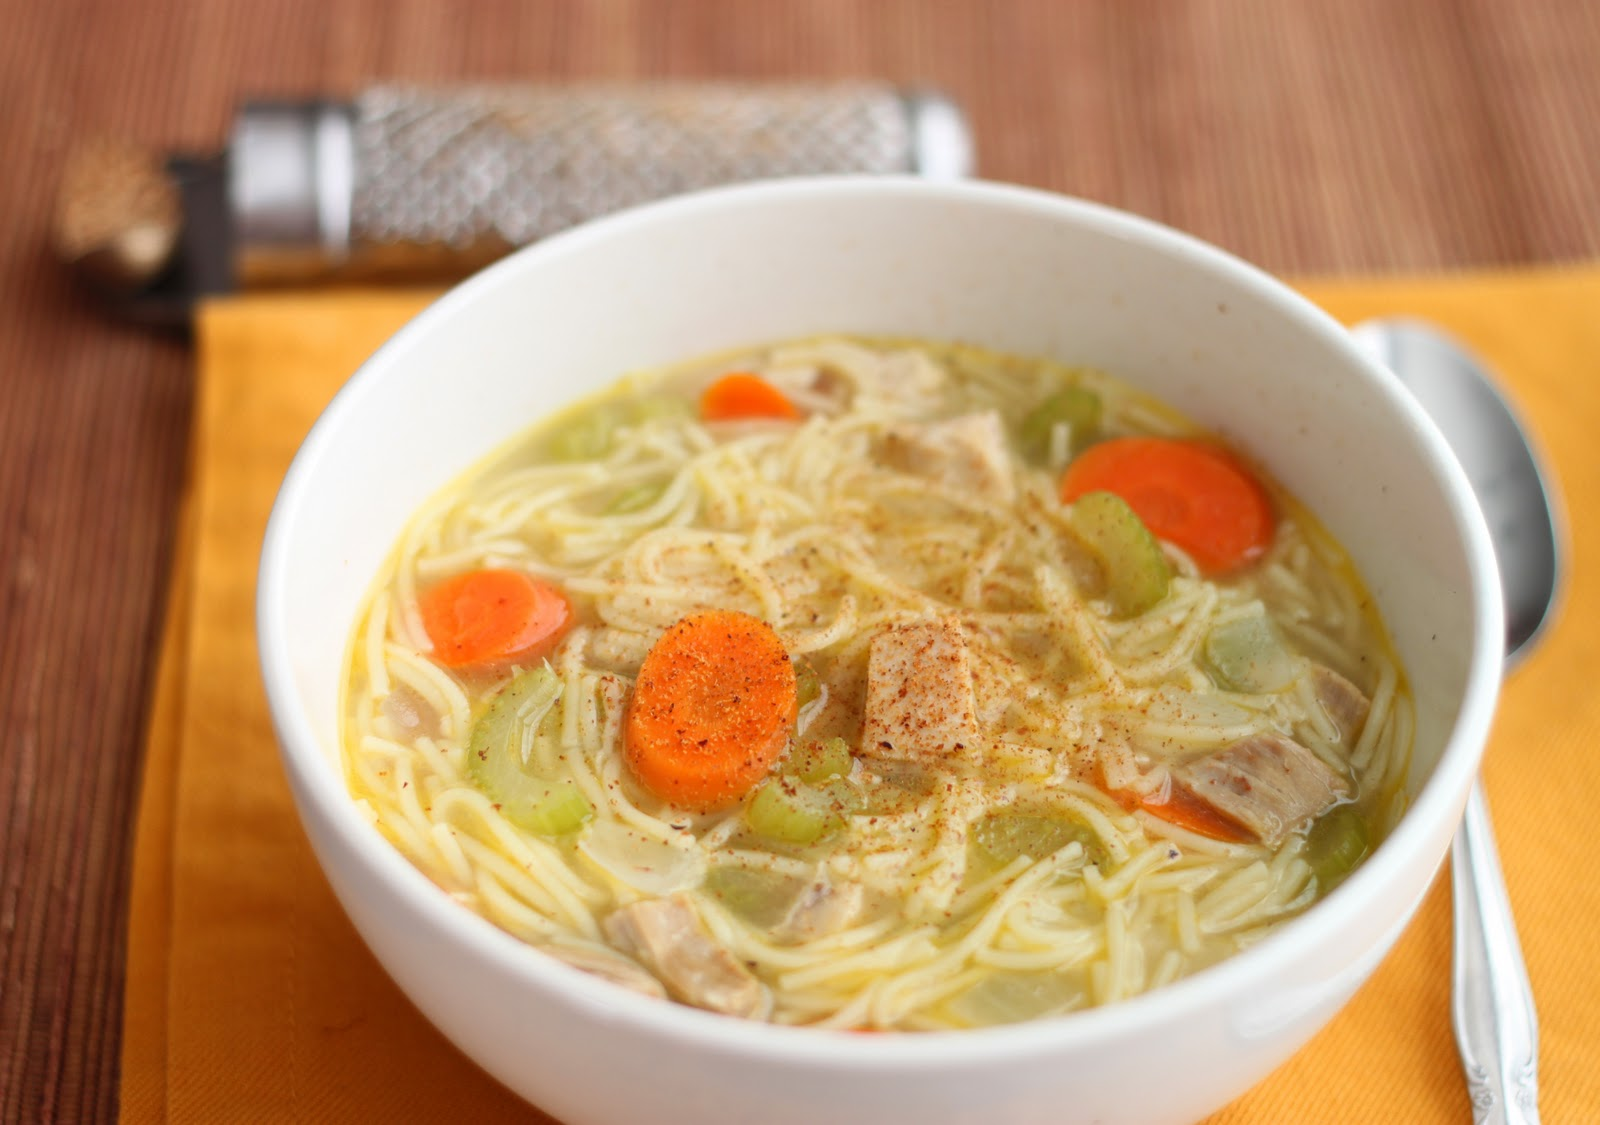 The Cilantropist: Turkey Noodle Soup, and Homemade Stock